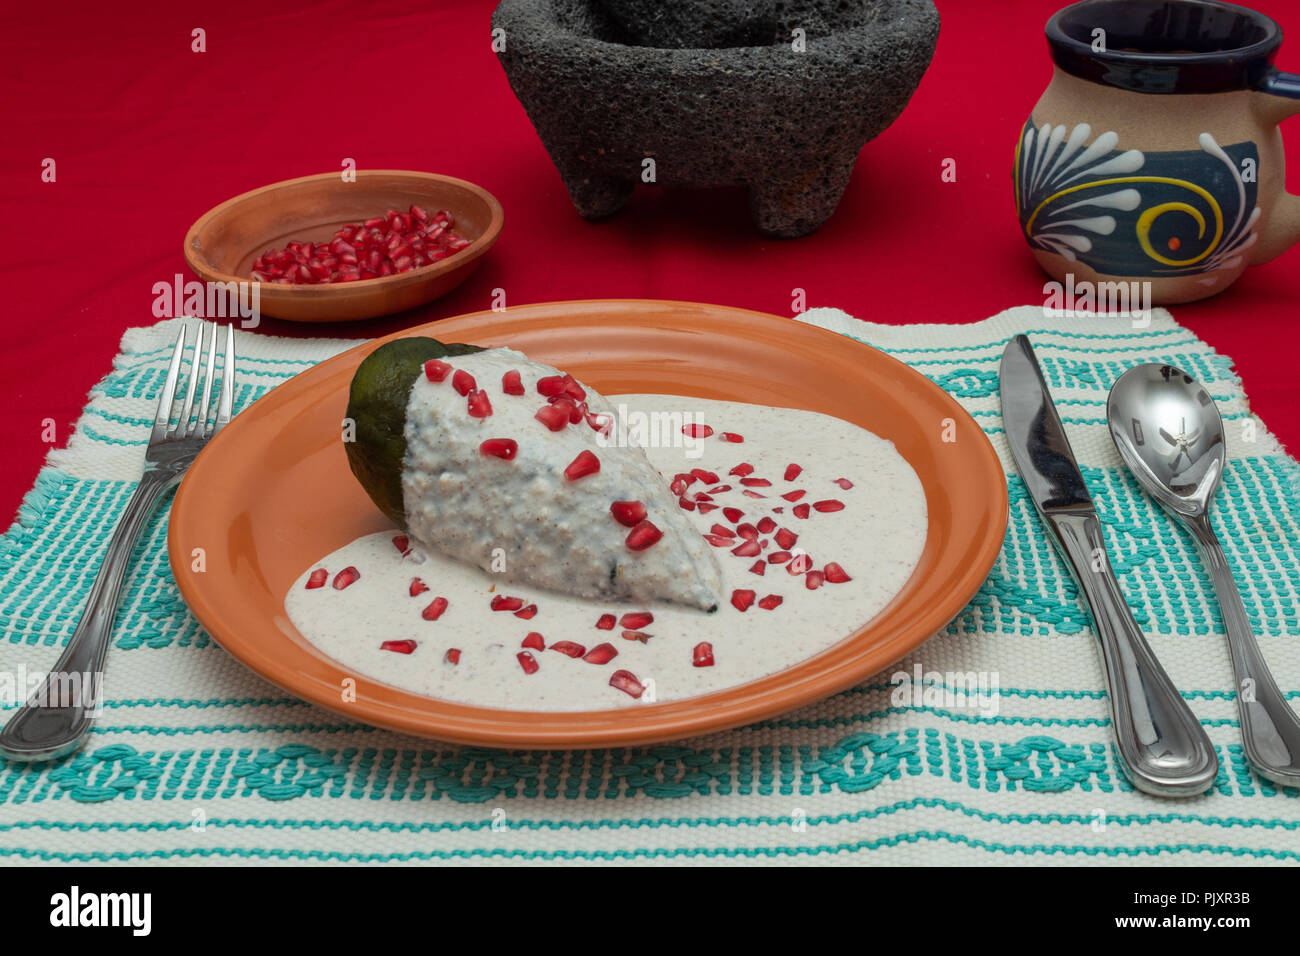 Chile en Nogada is a traditional mexican dish. Poblano pepper stuffed with ground meat, covered in walnut cream and pomgrenade seeds. Stock Photo